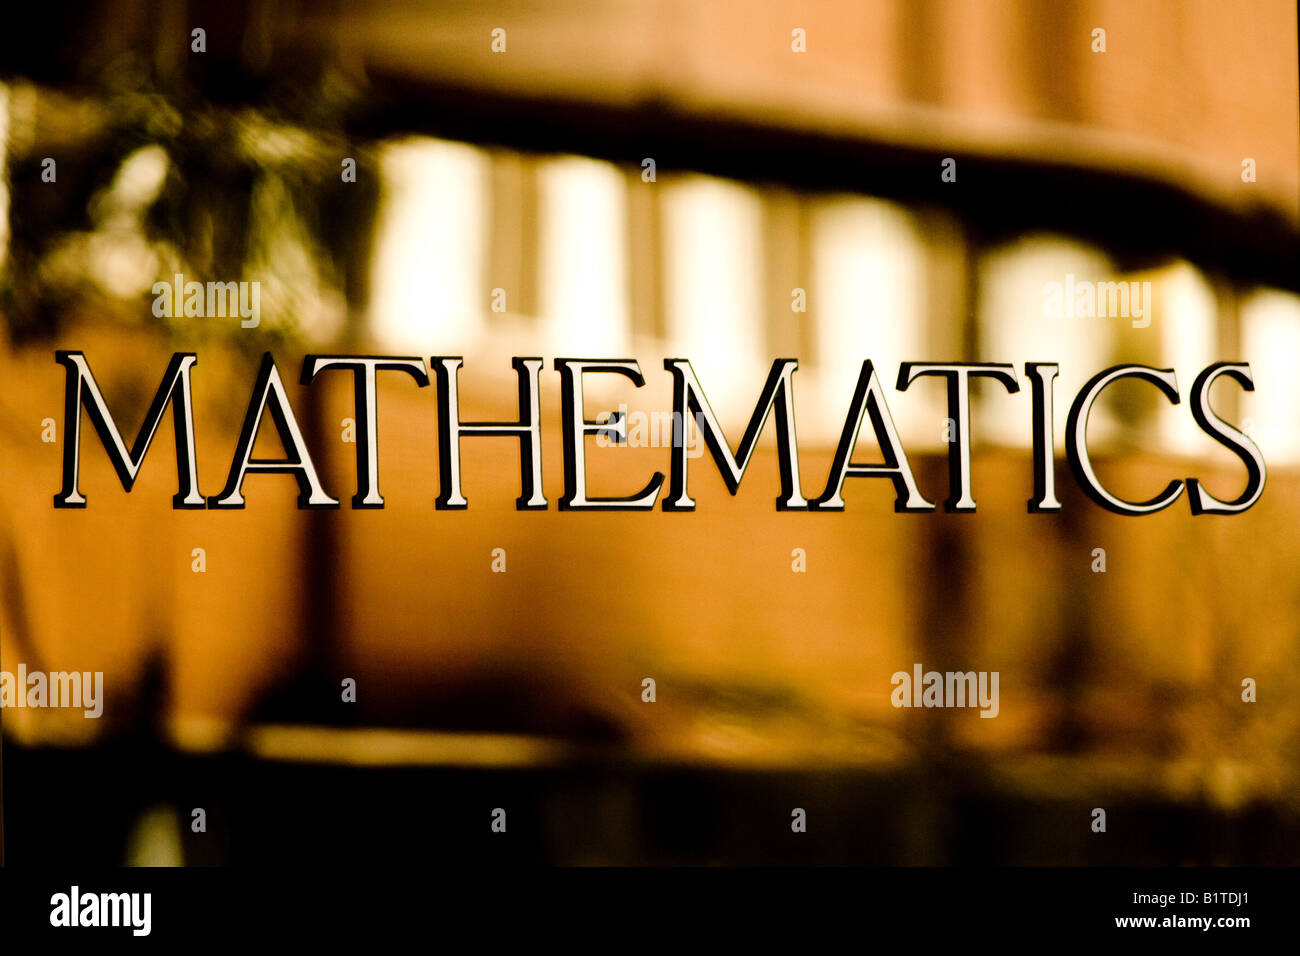 Mathematic sign on door of building of higher learning. Stock Photo